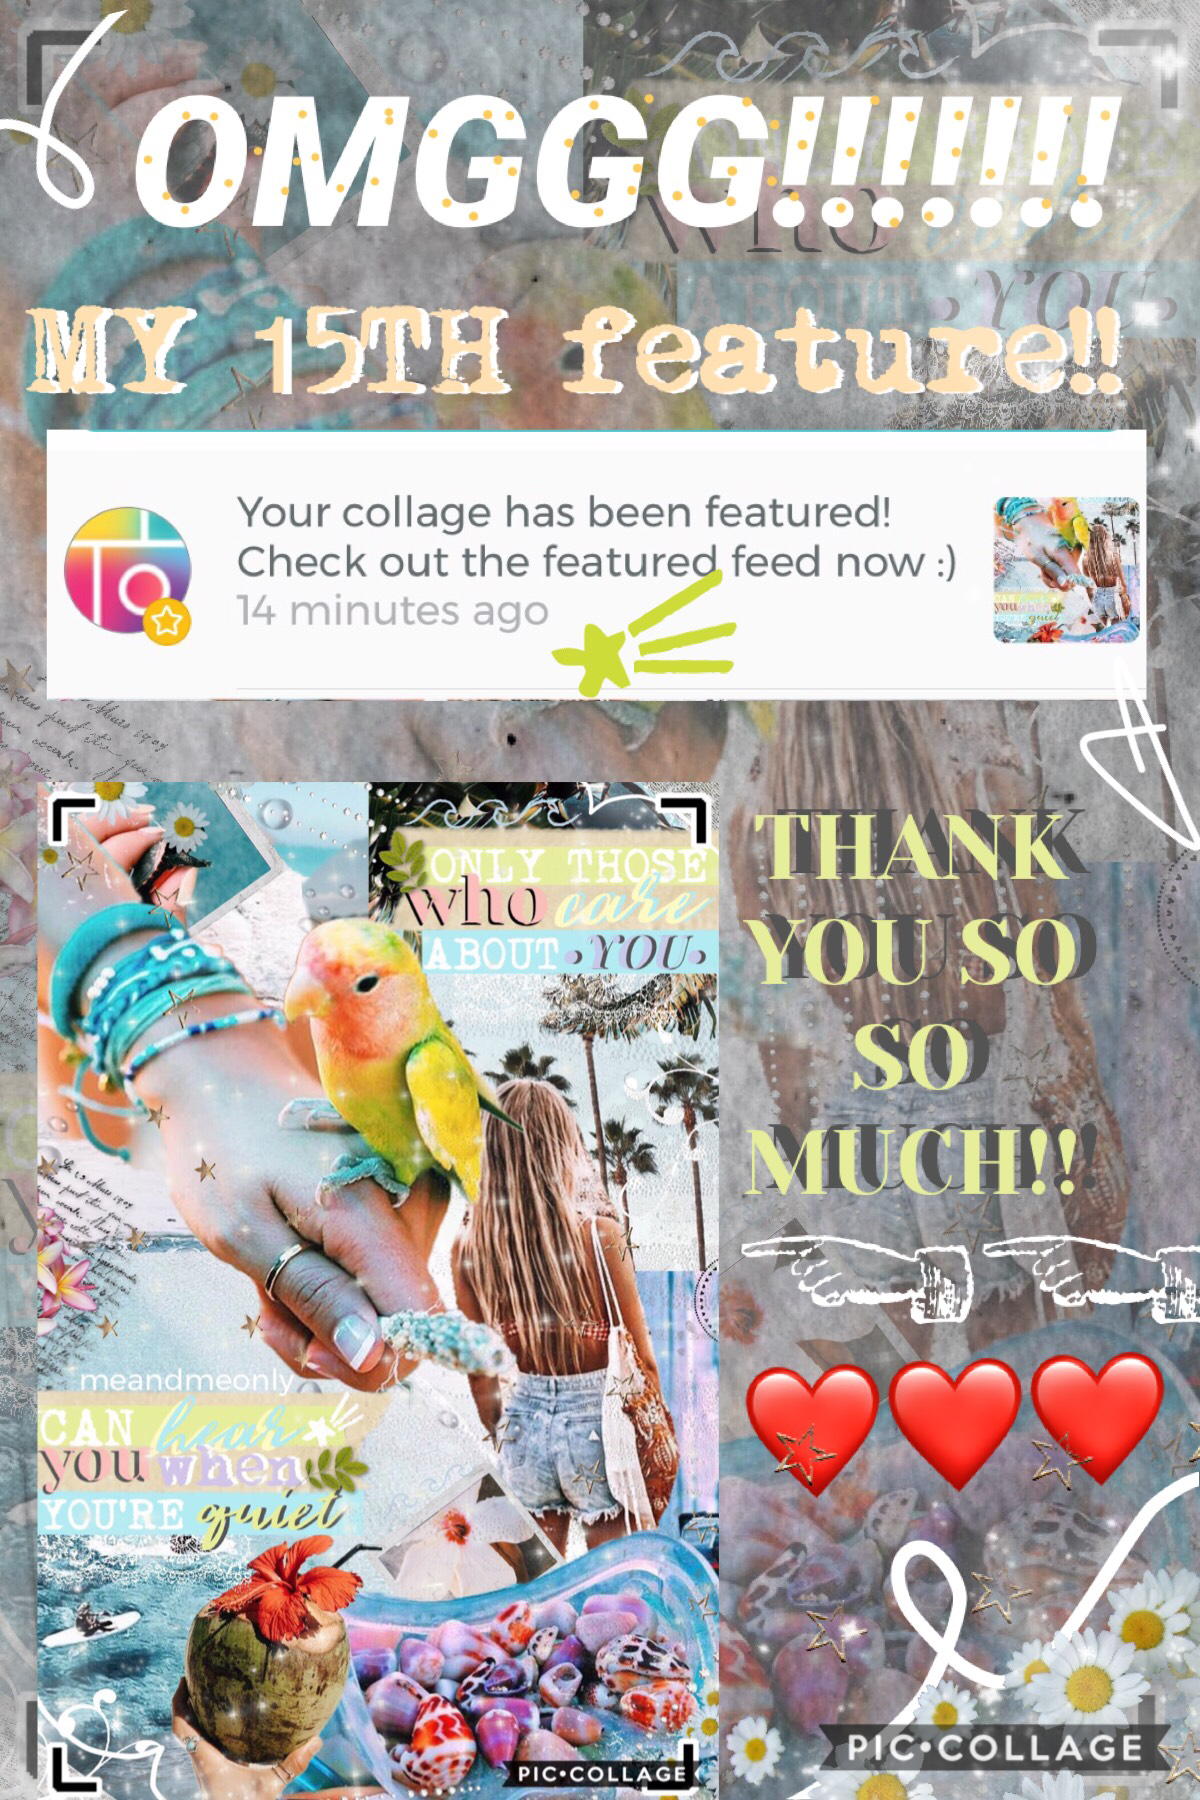 omg thank you so much @piccollage for my 15th feature! and sorry for my super bad layout, haha had to rush it because I gotta go to sleeeppp🥰 thanks again!! love you all xoxo💞💞